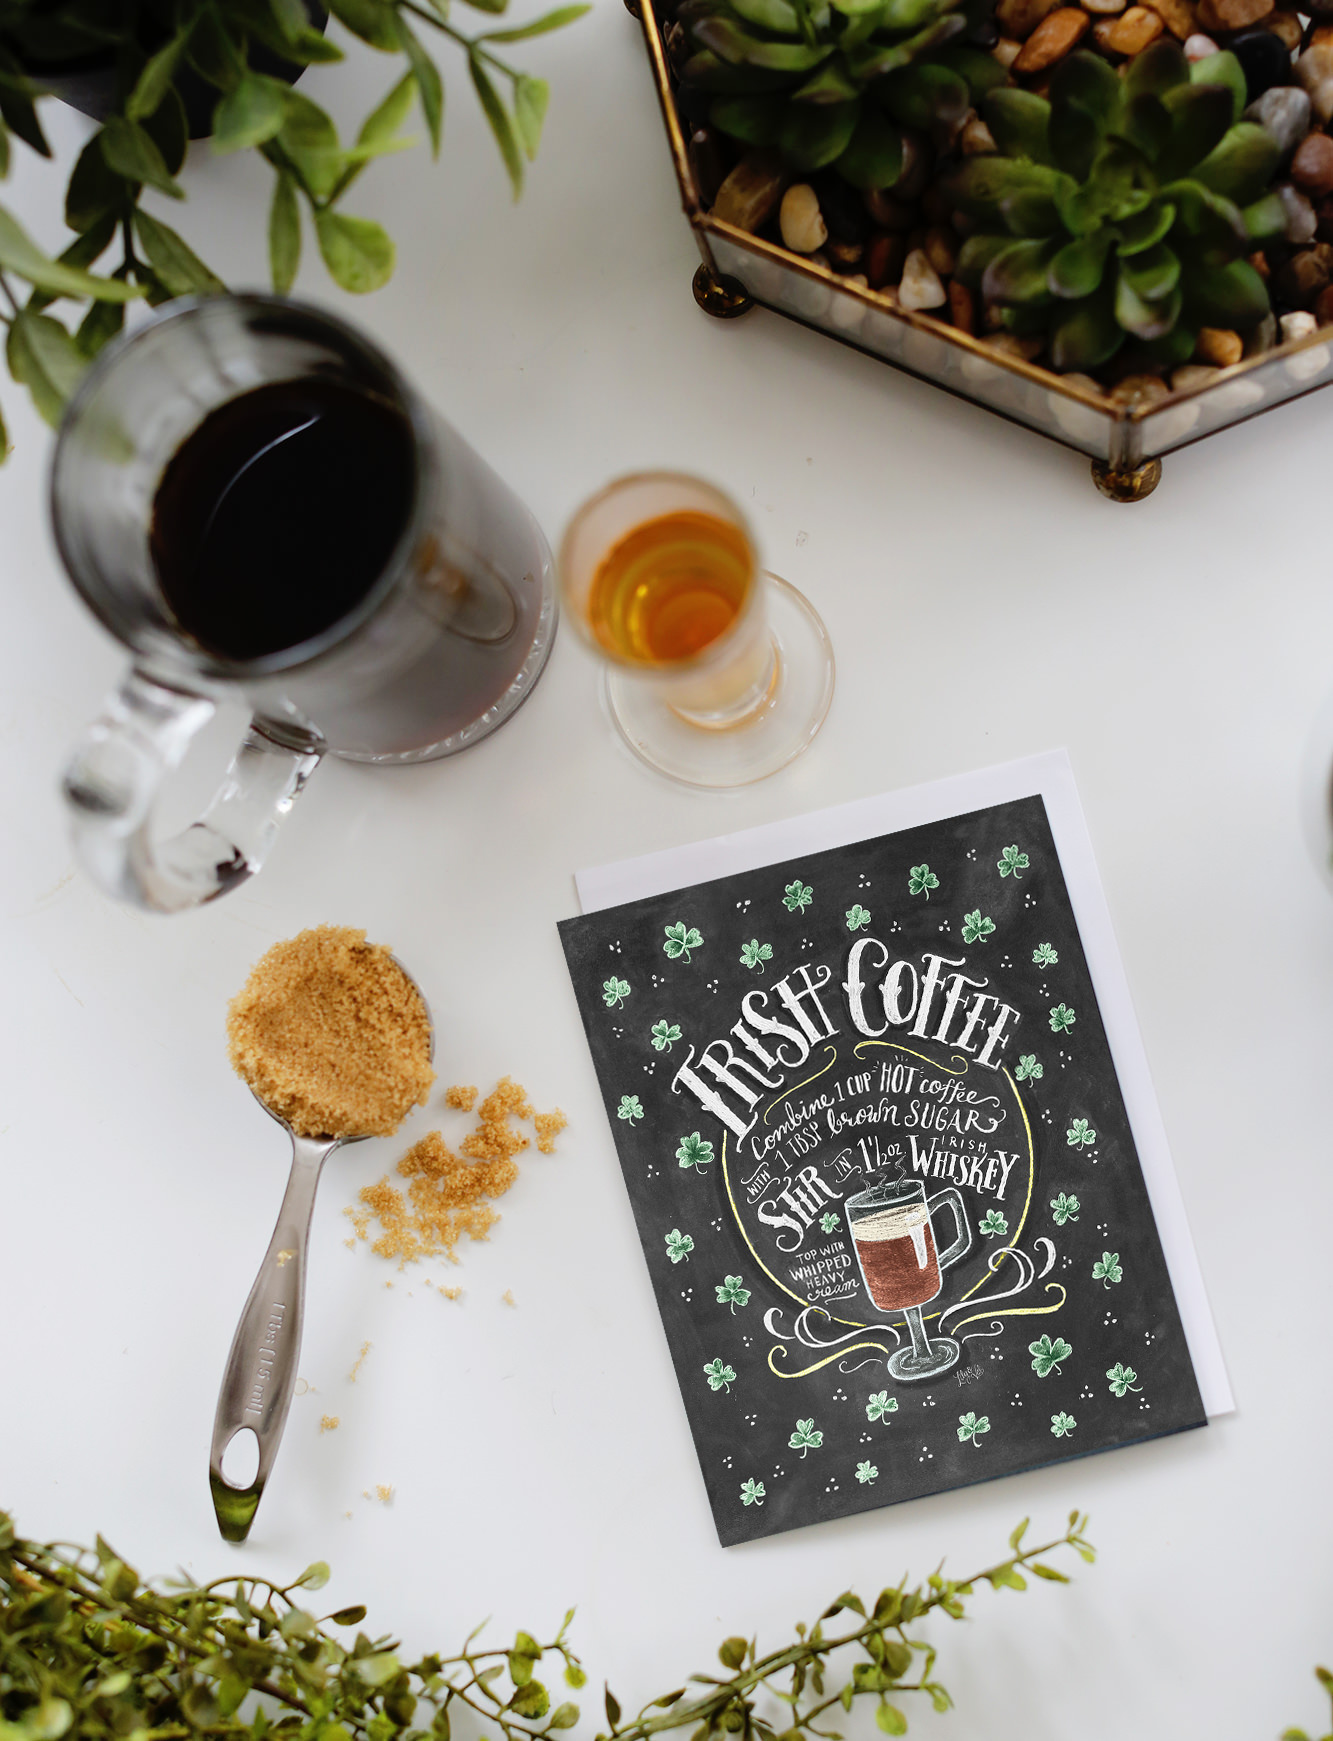 Our Irish Coffee Recipe card is great to send, and also to use! Mix up a glass of Irish Coffee this St. Patrick's Day!